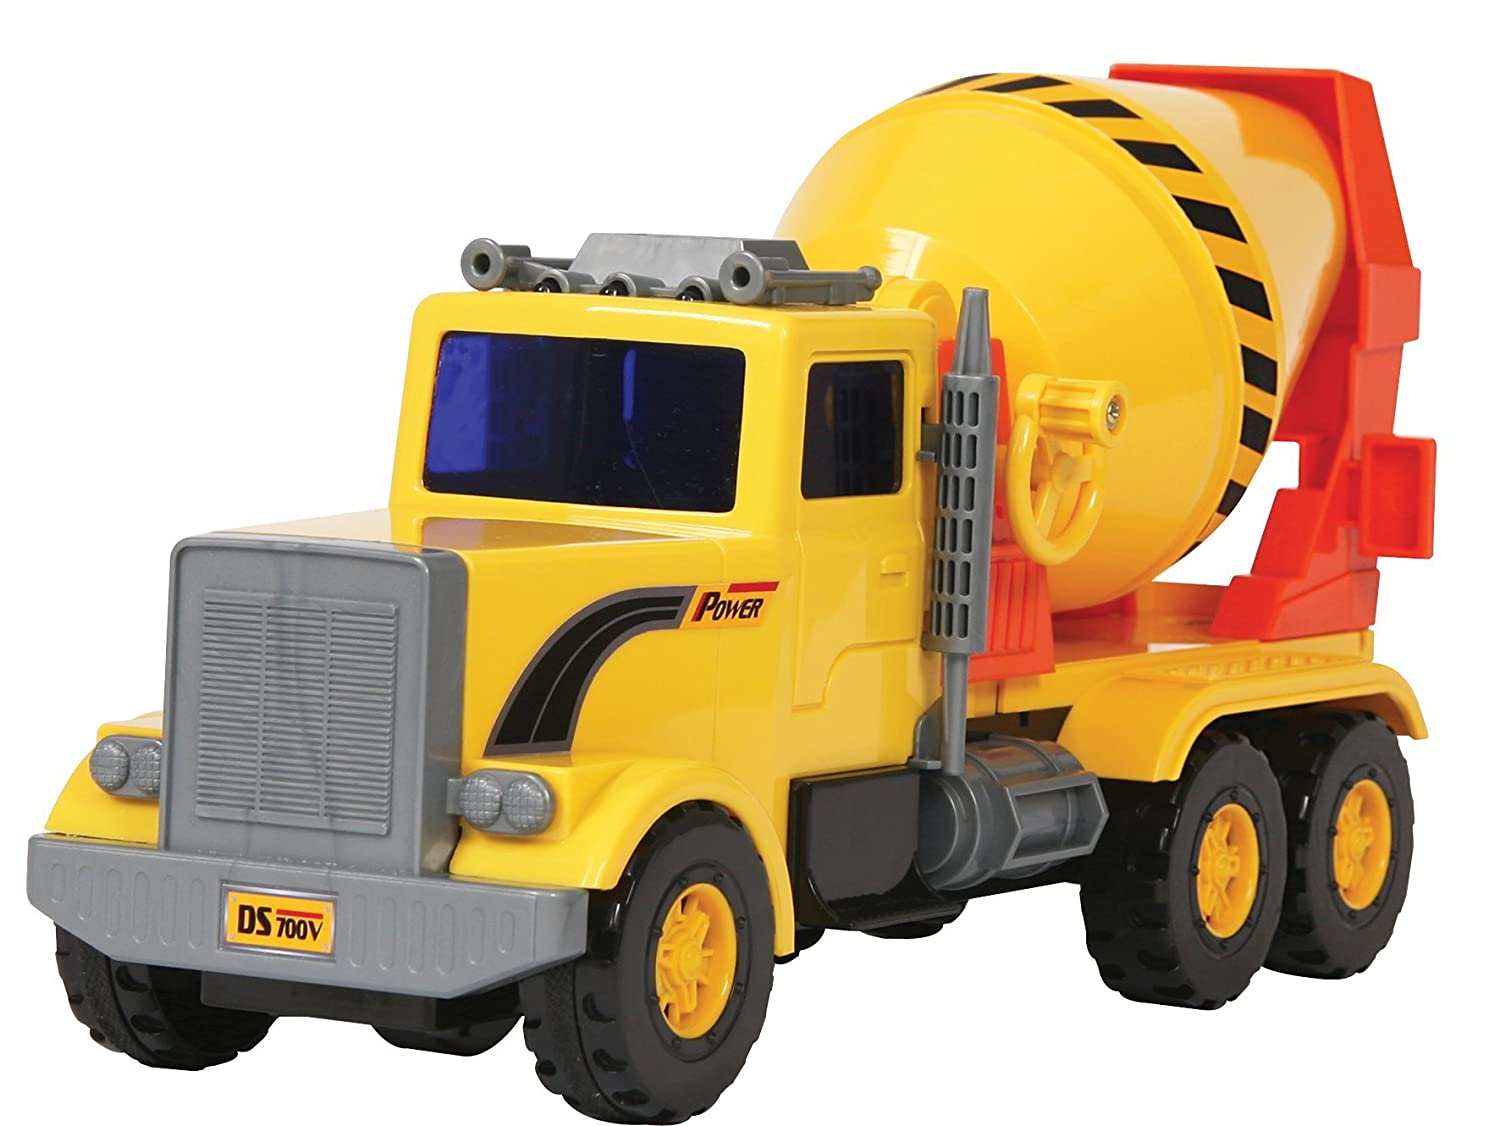 Cement Mixer Small World Toys Vehicles Orda USA 3300703 Friction Powered